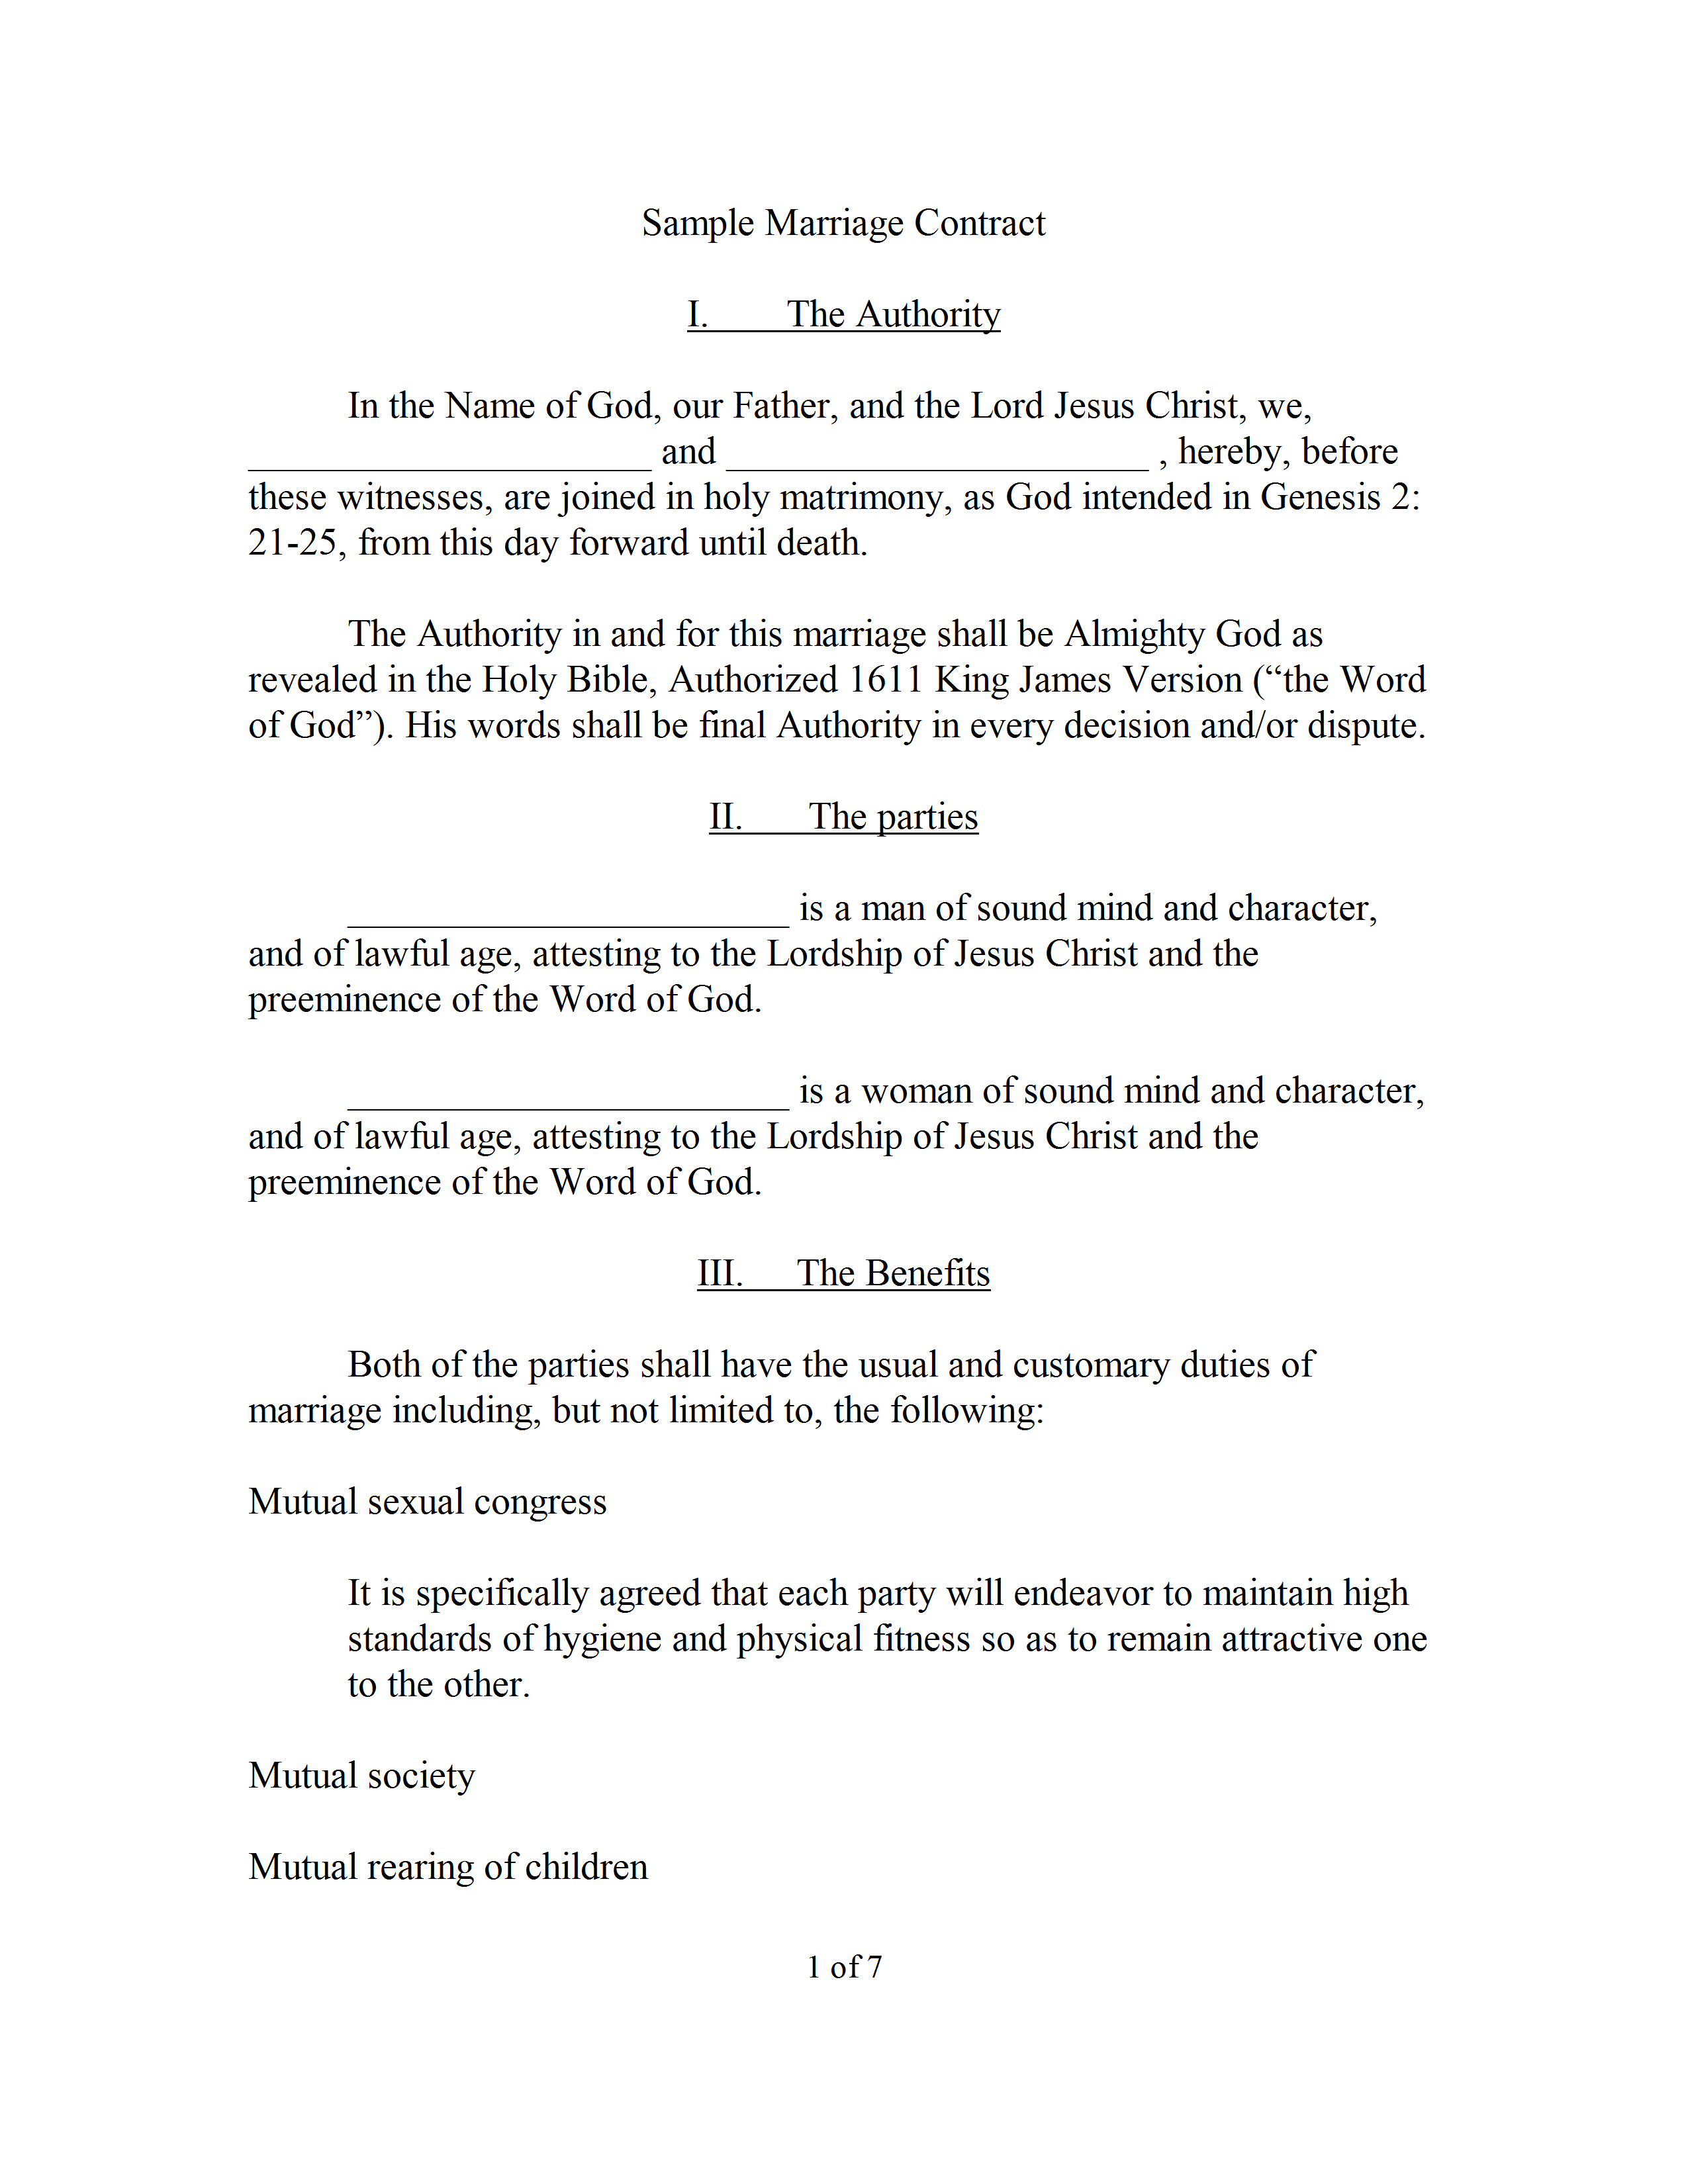 Marriage Termination Agreement 5 Malaysian Marriage Laws You Probably Didnt Know Asklegalmy